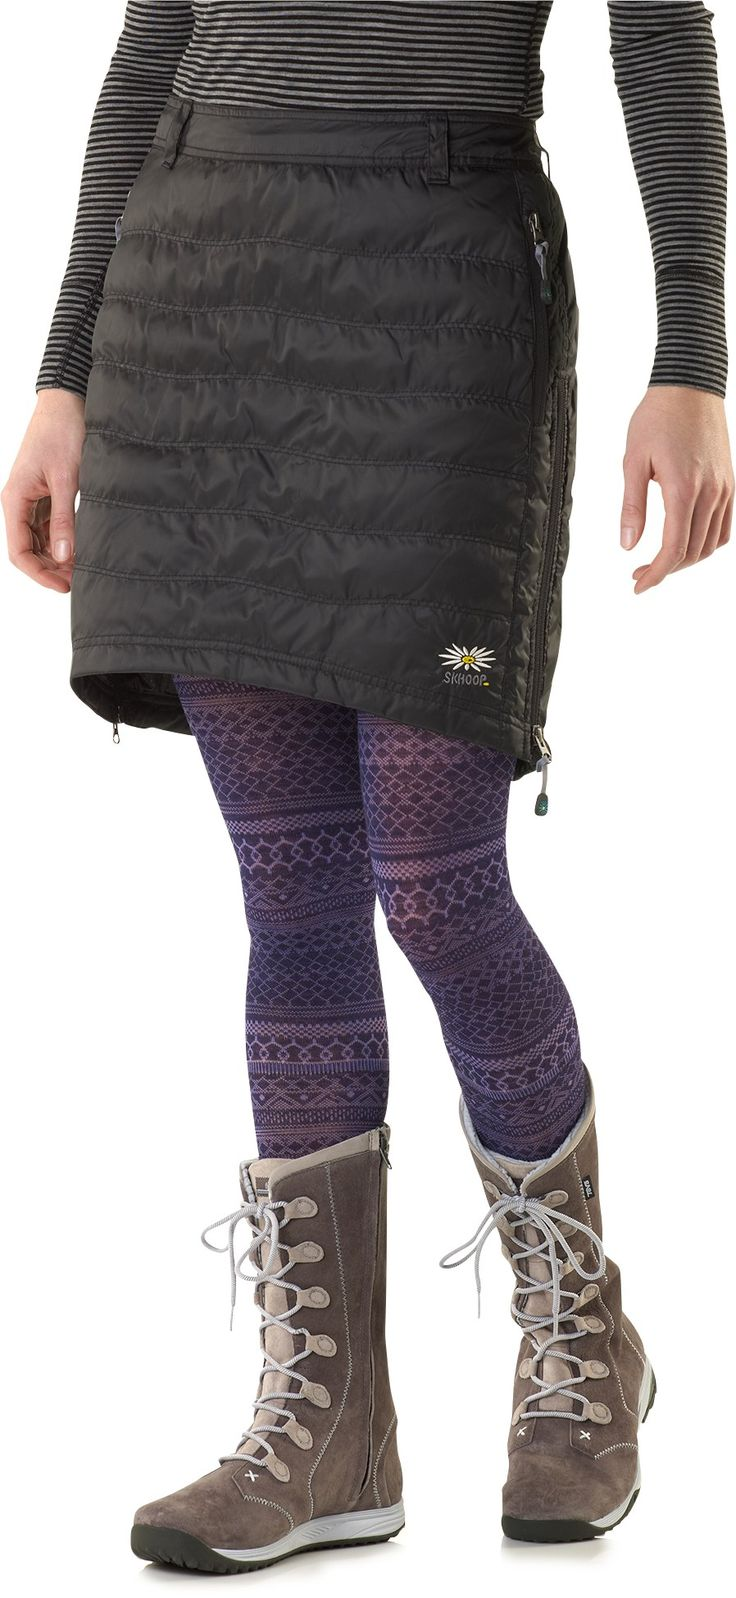 Skhoop Short Down Skirt - I'd get it in plum.  I have the long one for those extra cold days and just hanging around, but the short one would be great for activities like cross country skiing and ice skating!